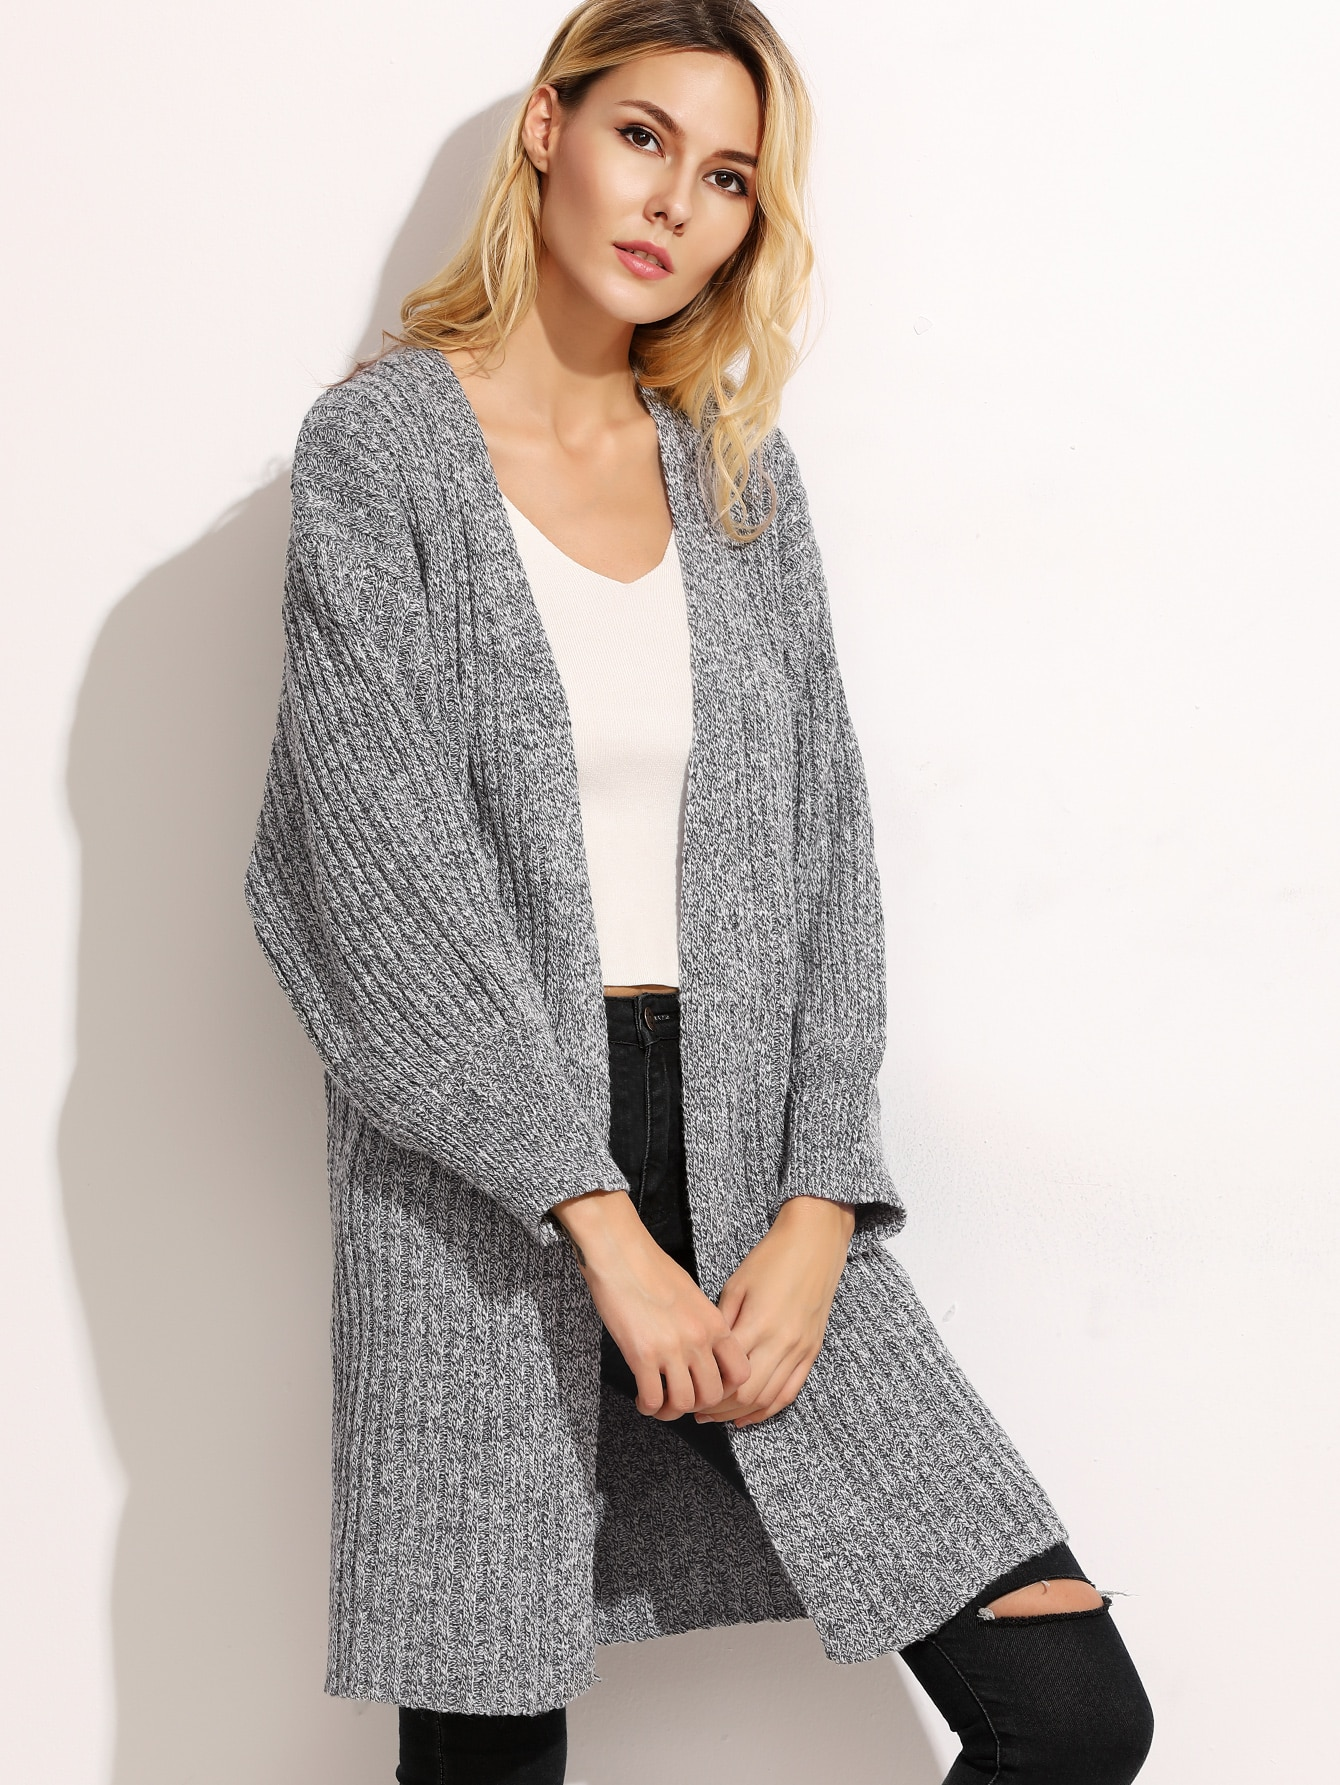 Heather Grey Drop Shoulder Ribbed Cardigan sweater160922003